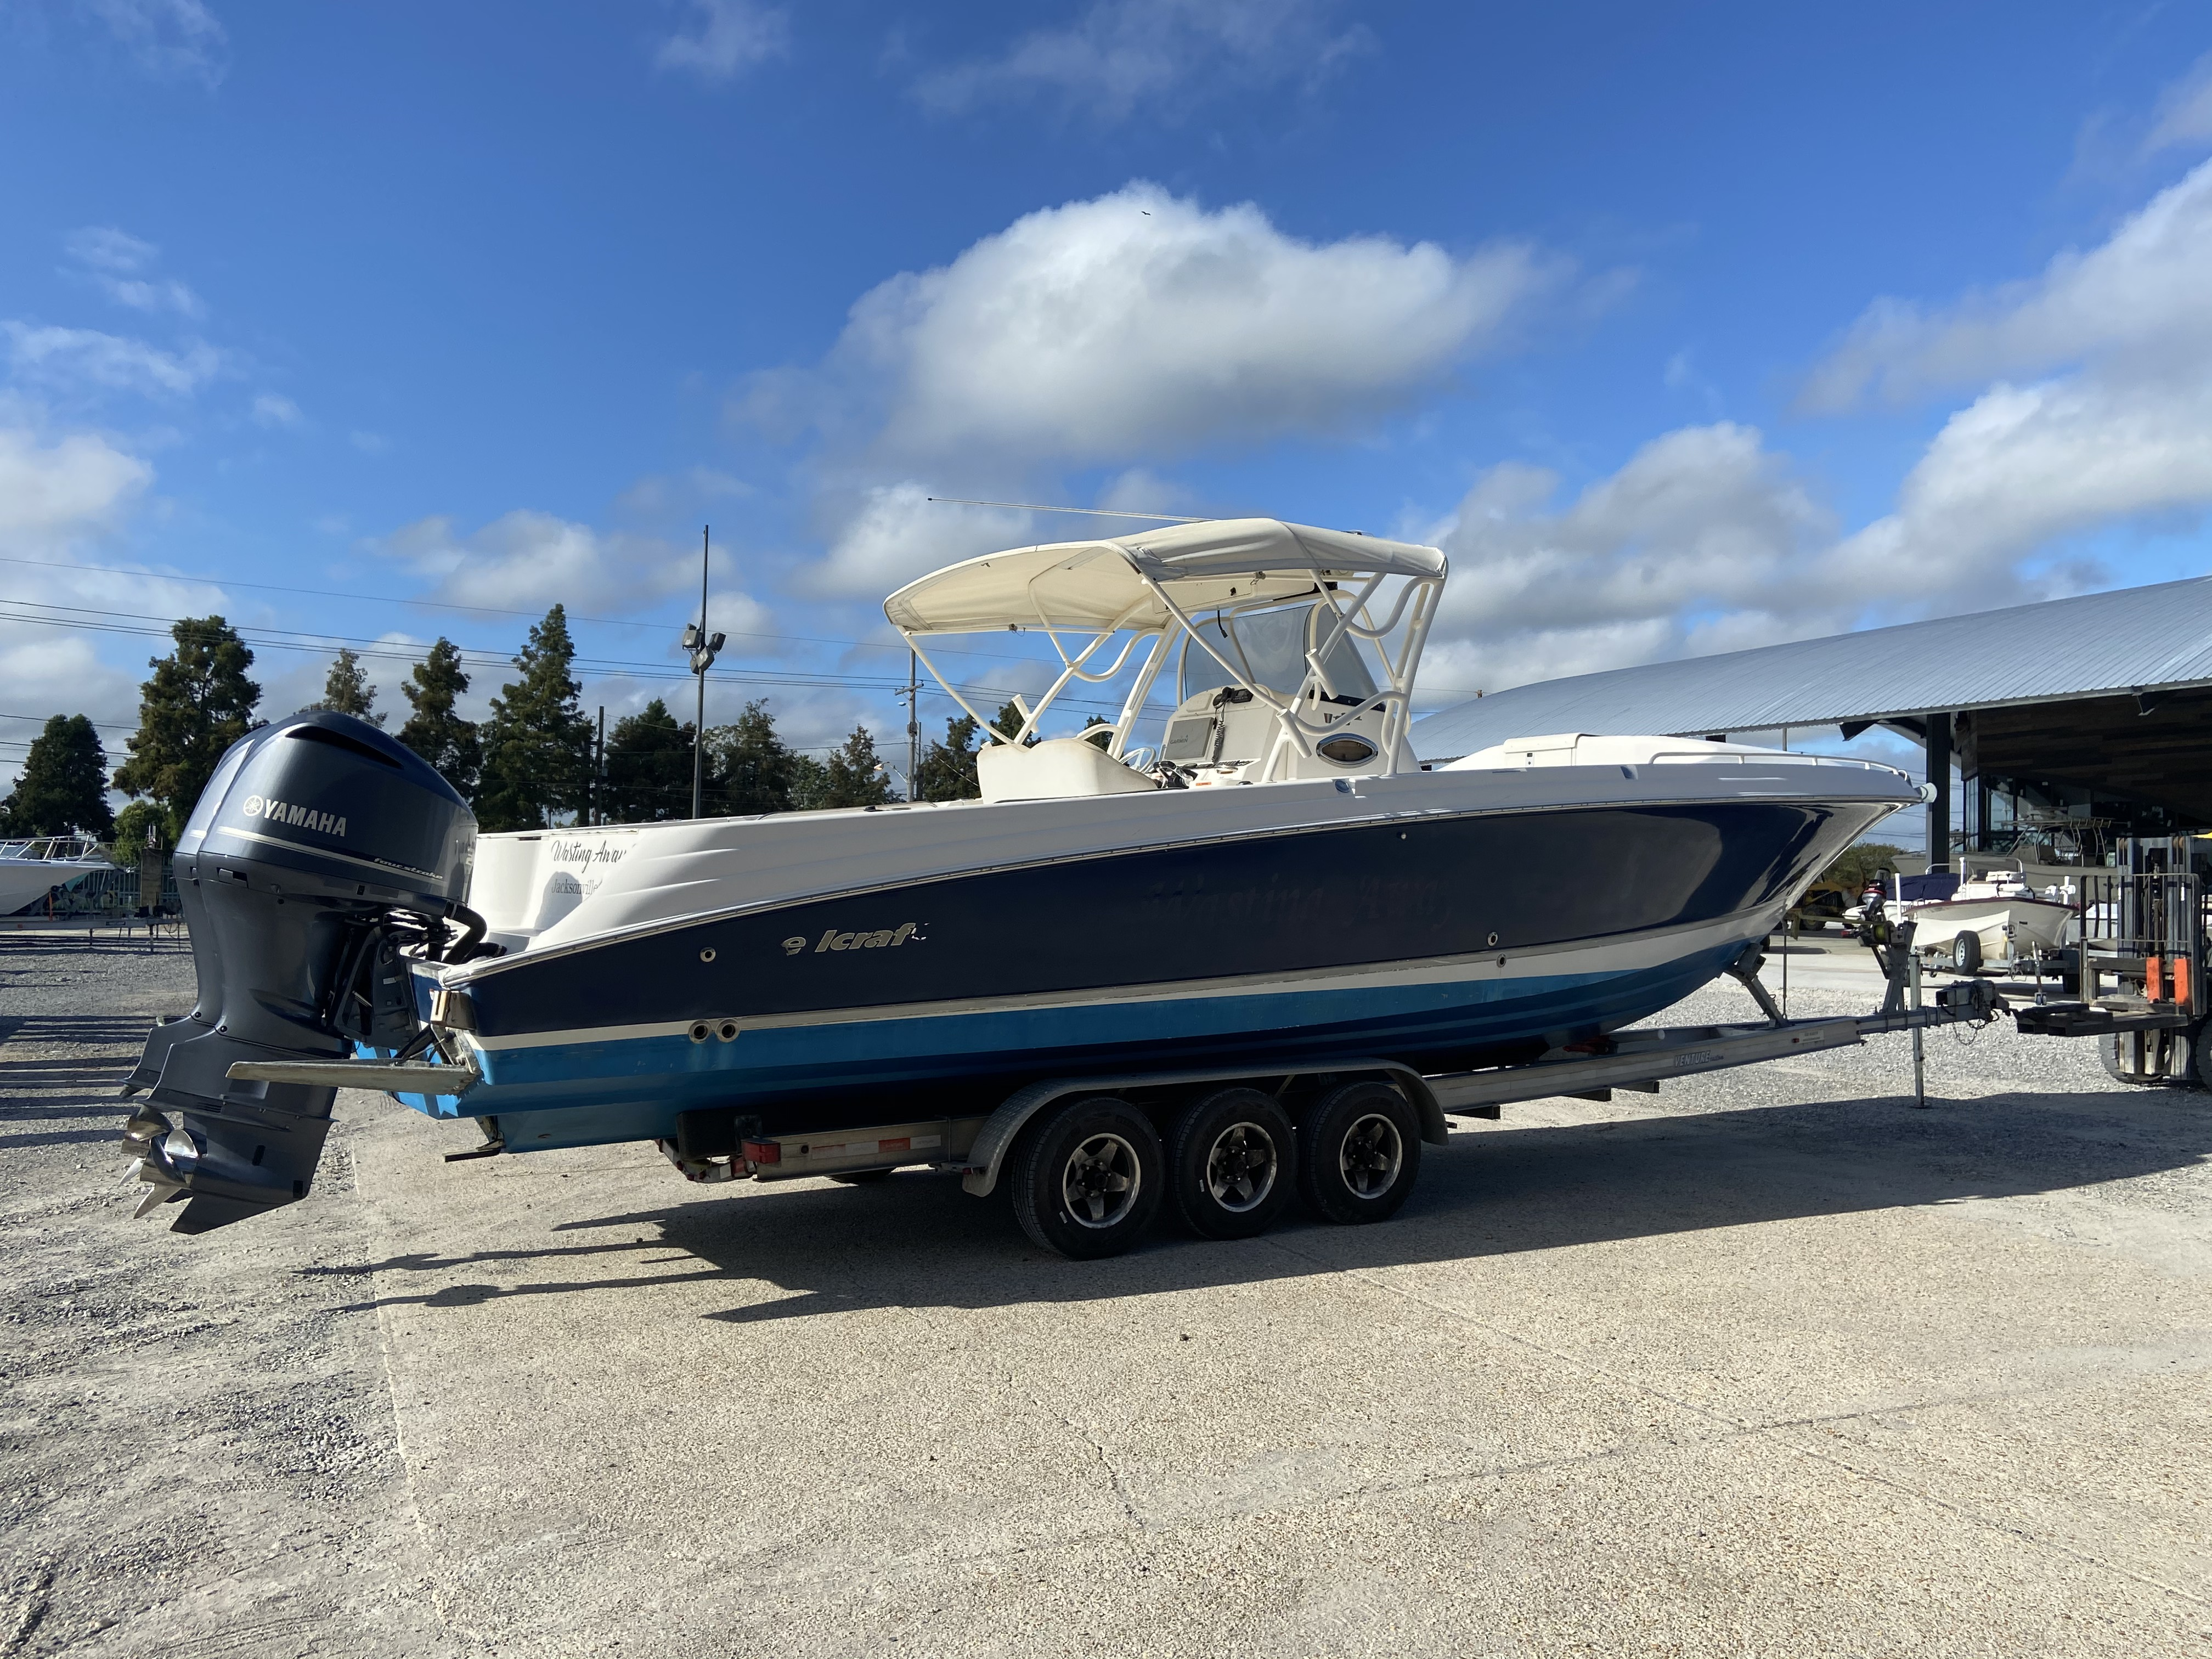 2006 Wellcraft boat for sale, model of the boat is 352 Sport & Image # 22 of 27